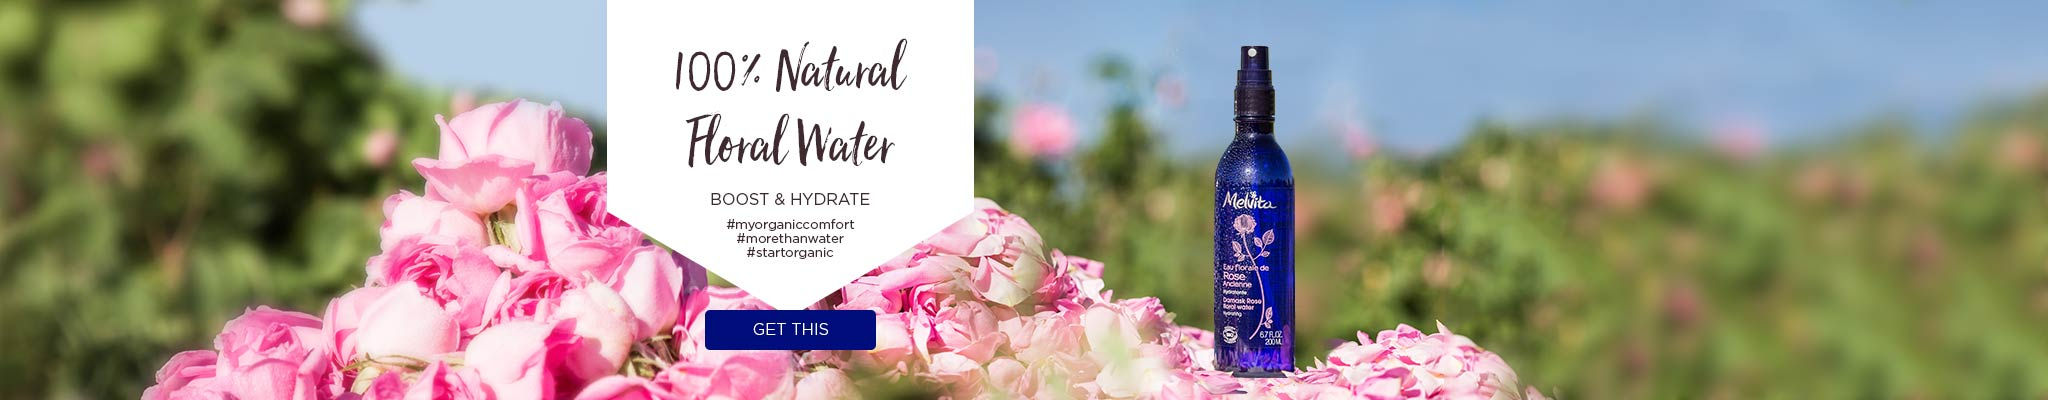 100% Natural Floral Water